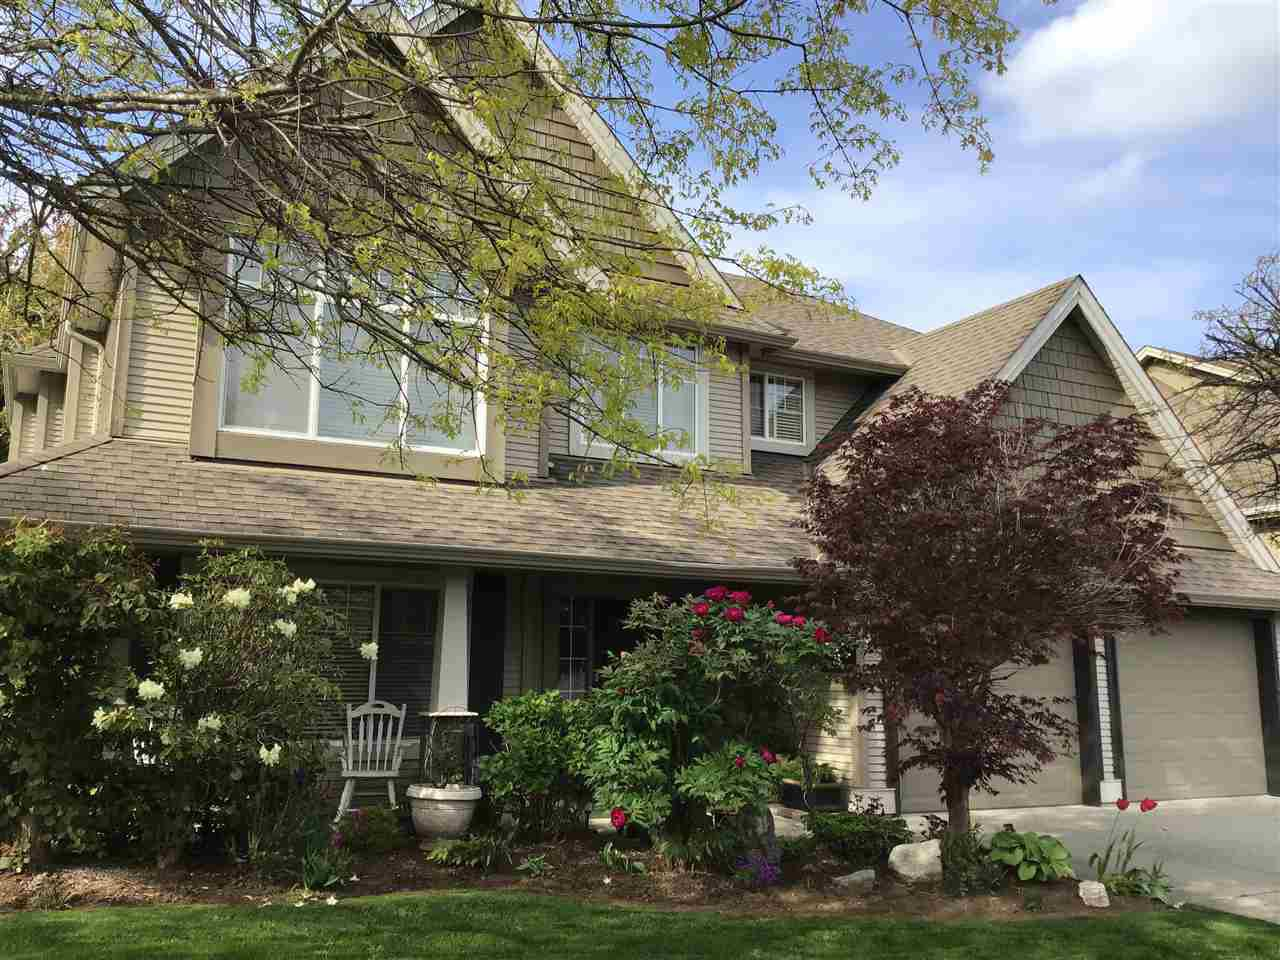 """Main Photo: 6 31491 SPUR Avenue in Abbotsford: Abbotsford West House for sale in """"Falcon Ridge"""" : MLS®# R2394887"""